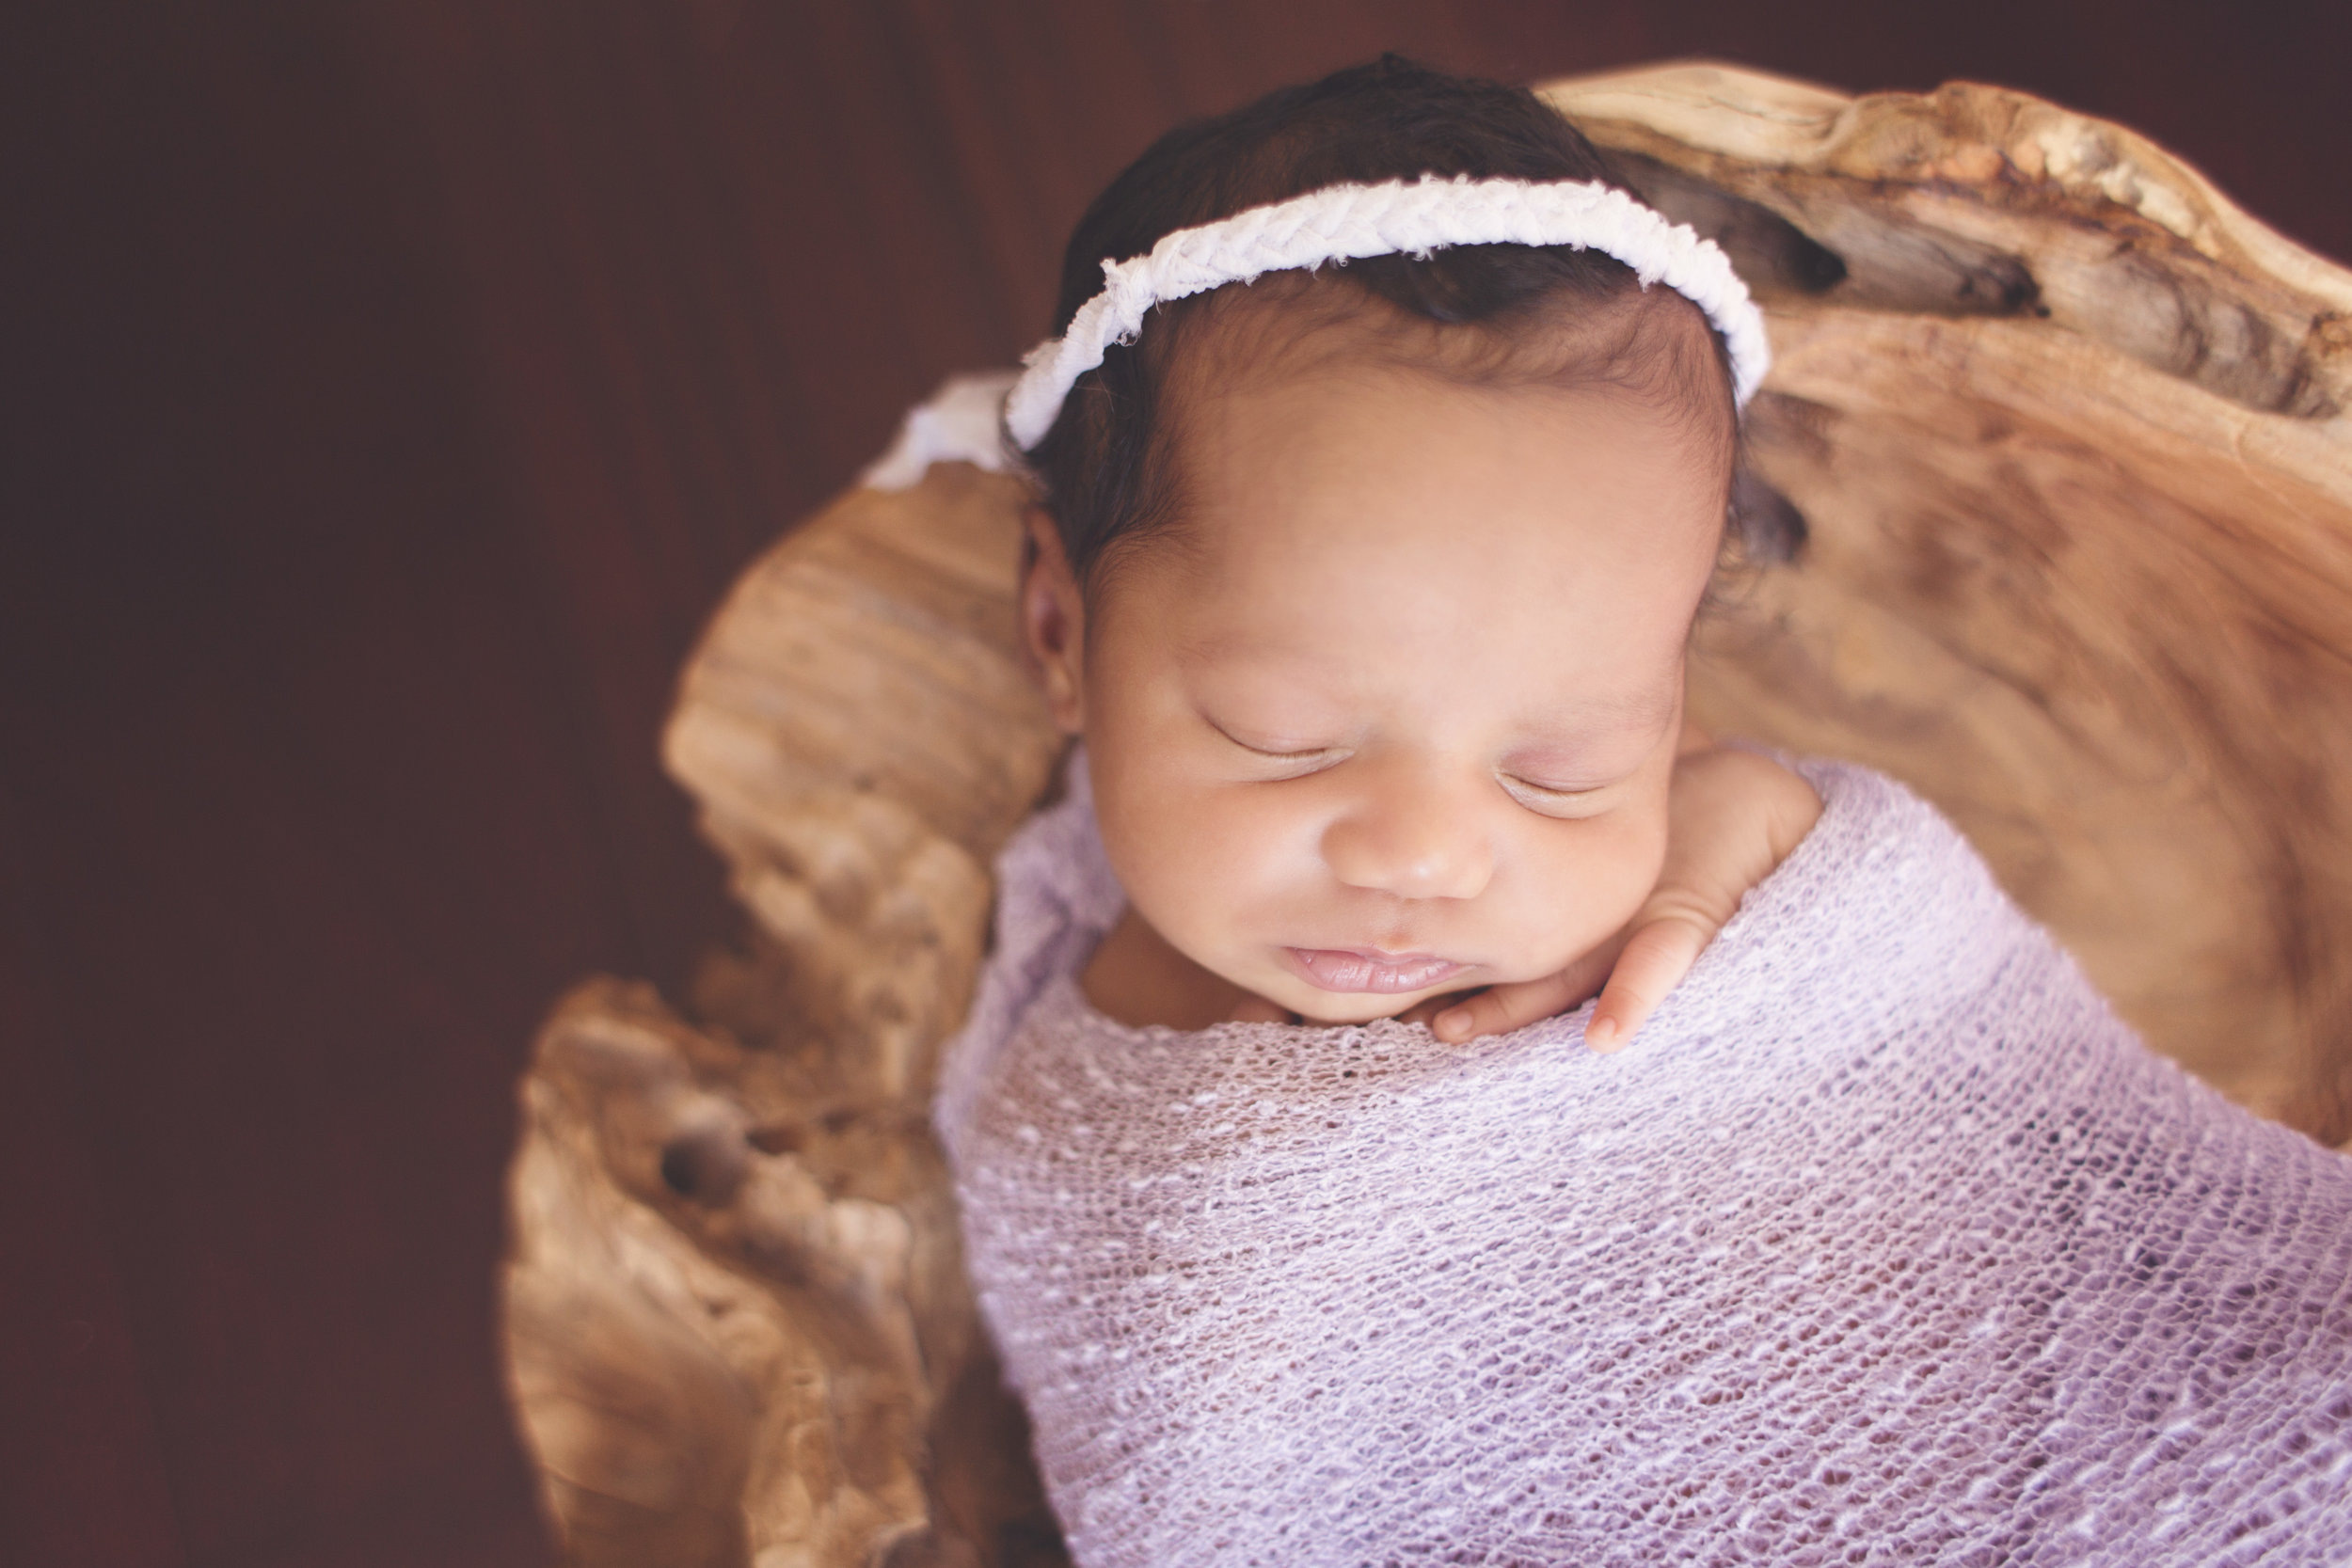 newborns: The easiest age to travel! Photo Credit: Candids and Colors PHOTOGRAPHY